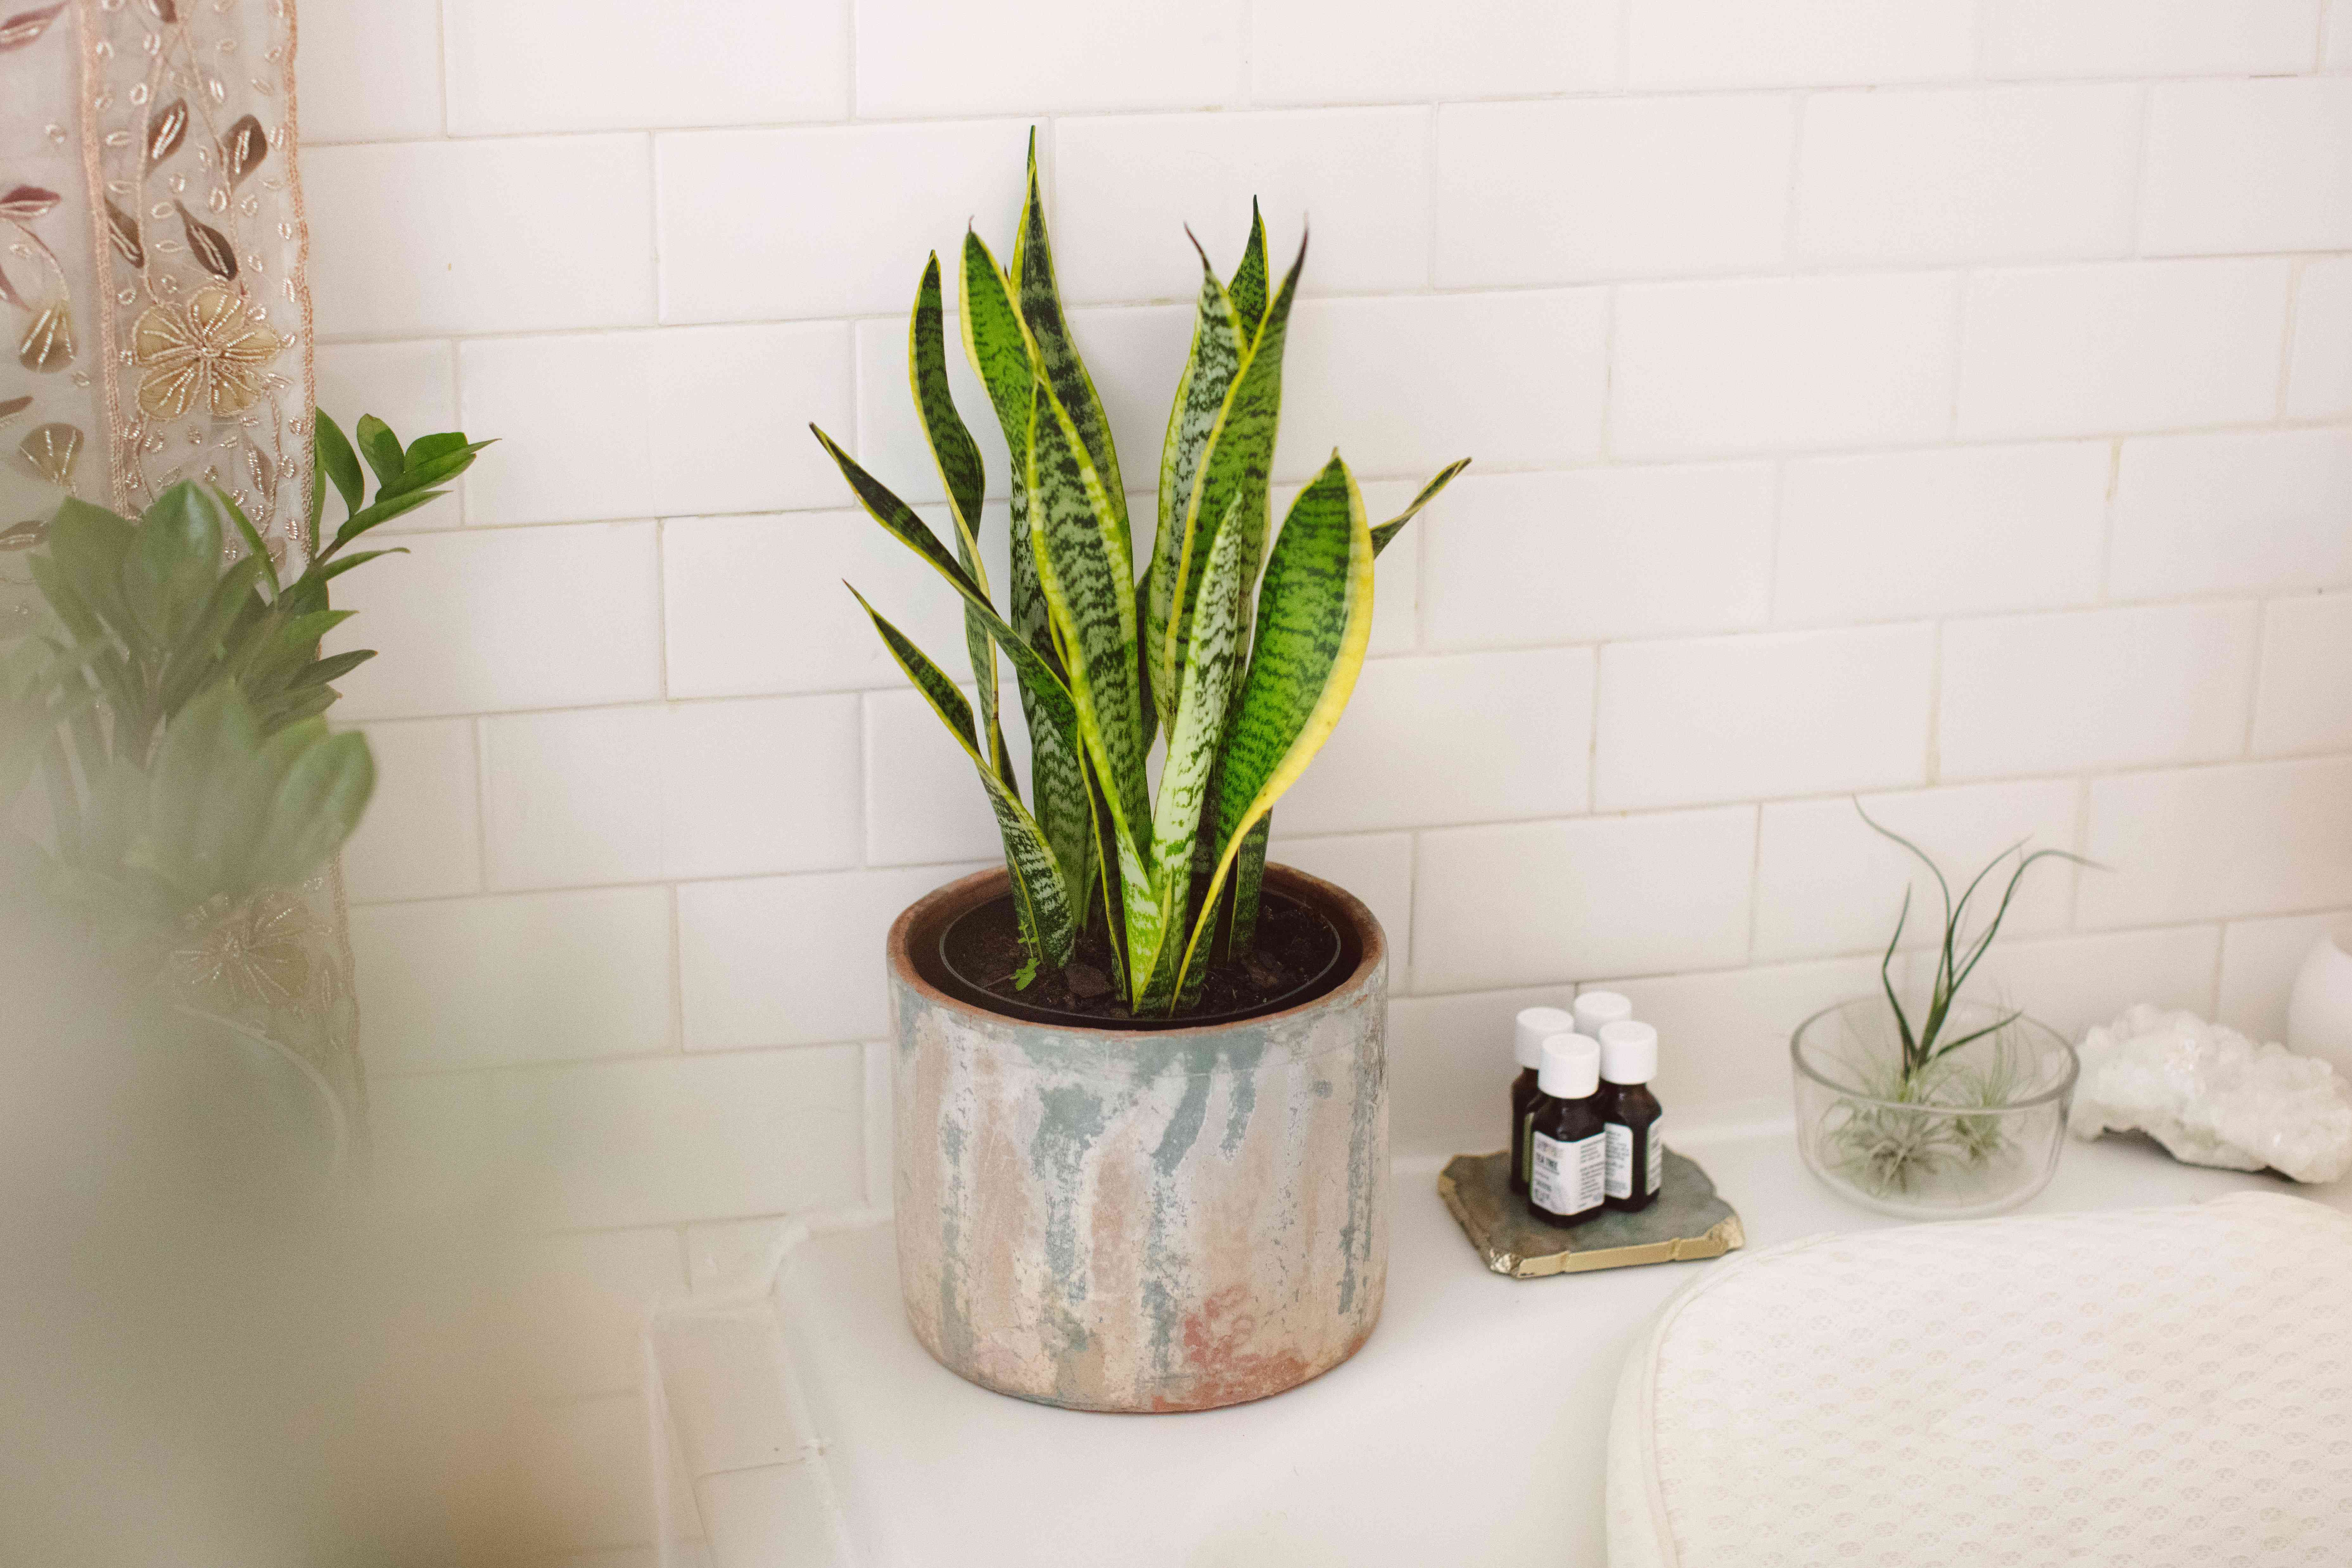 20 Shower Plants That Want to Live in Your Bathroom